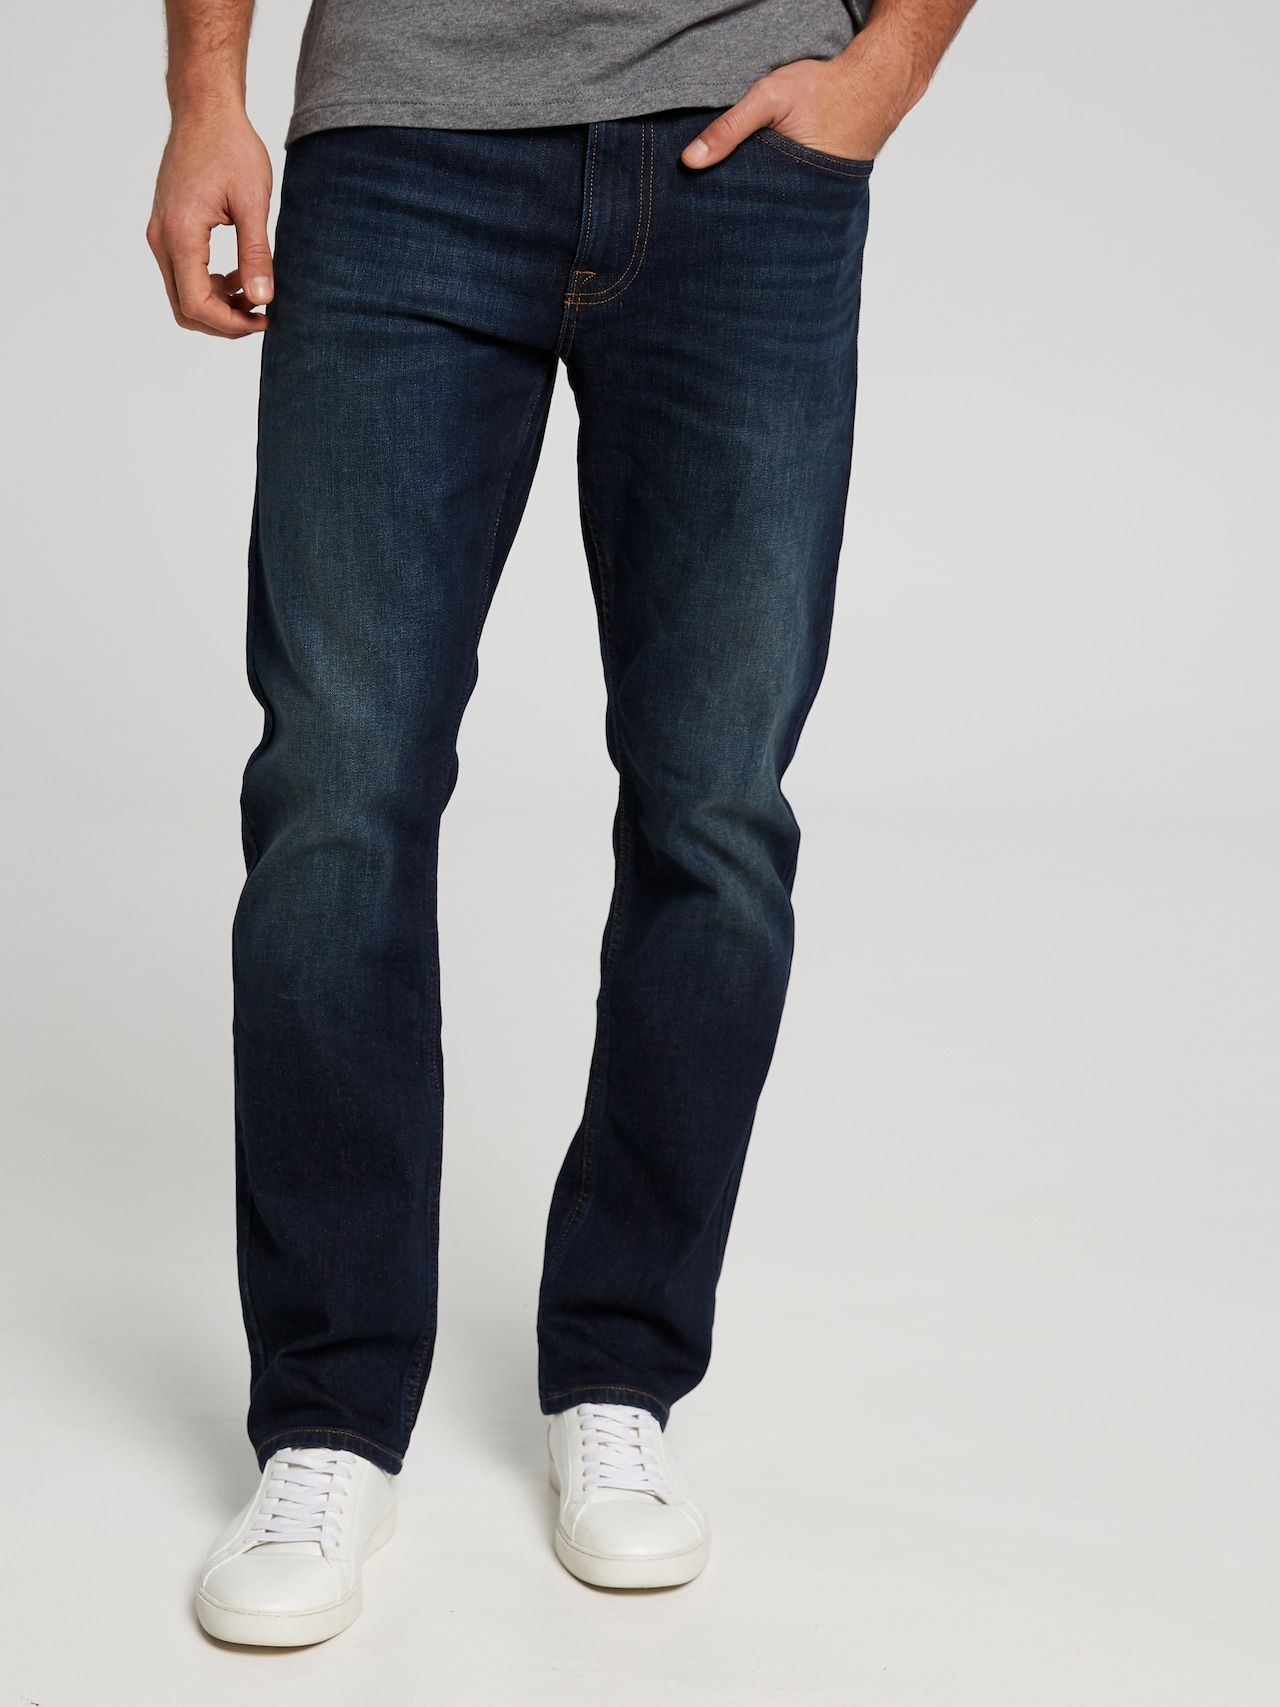 how to purchase arrives classic Calvin Klein Straight Houston Dark Blue - Just Jeans Online